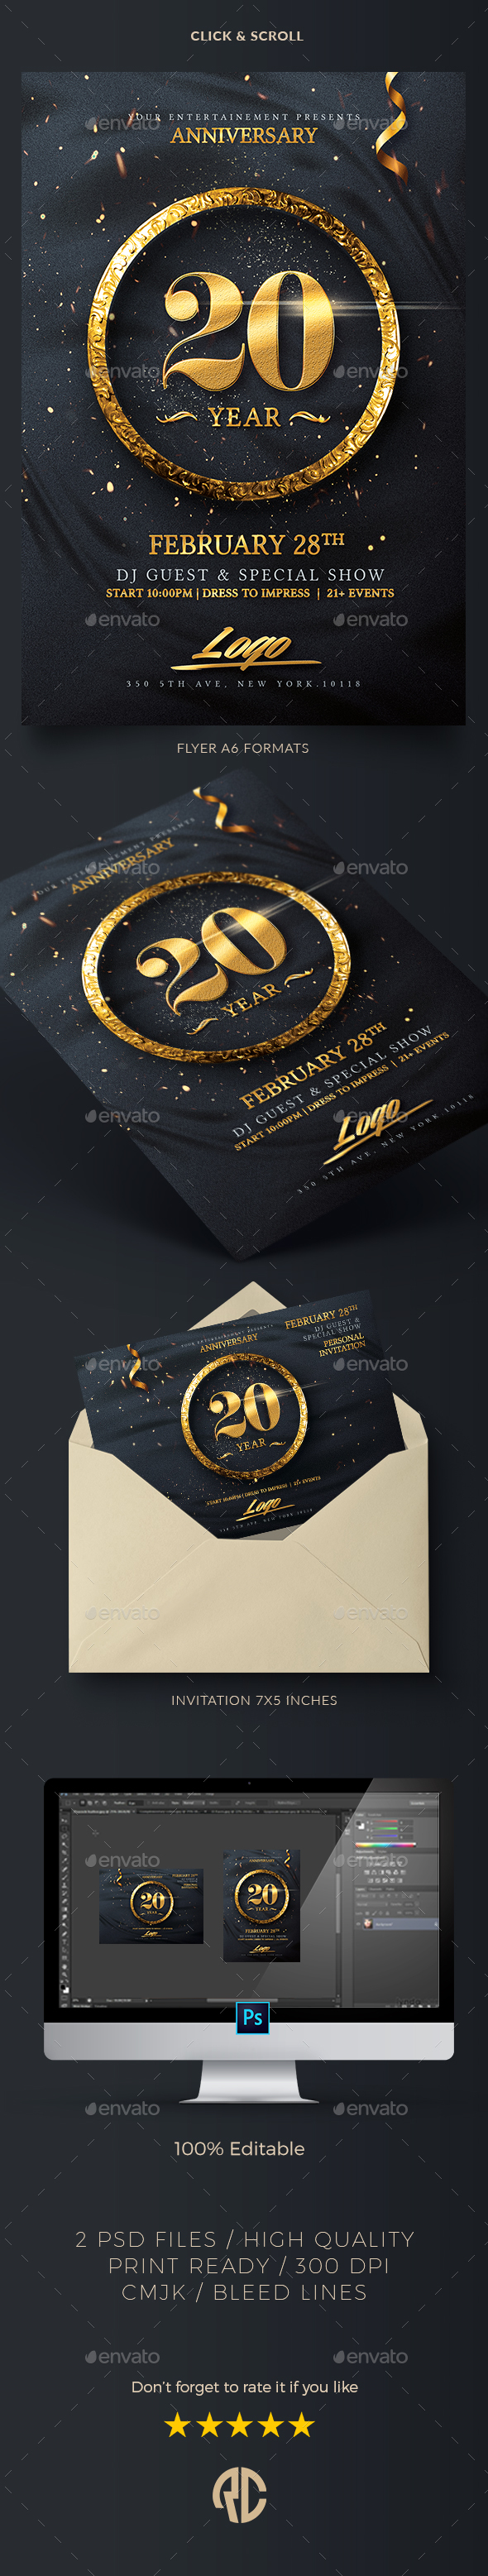 Classy Birthday Invitation - Events Flyers